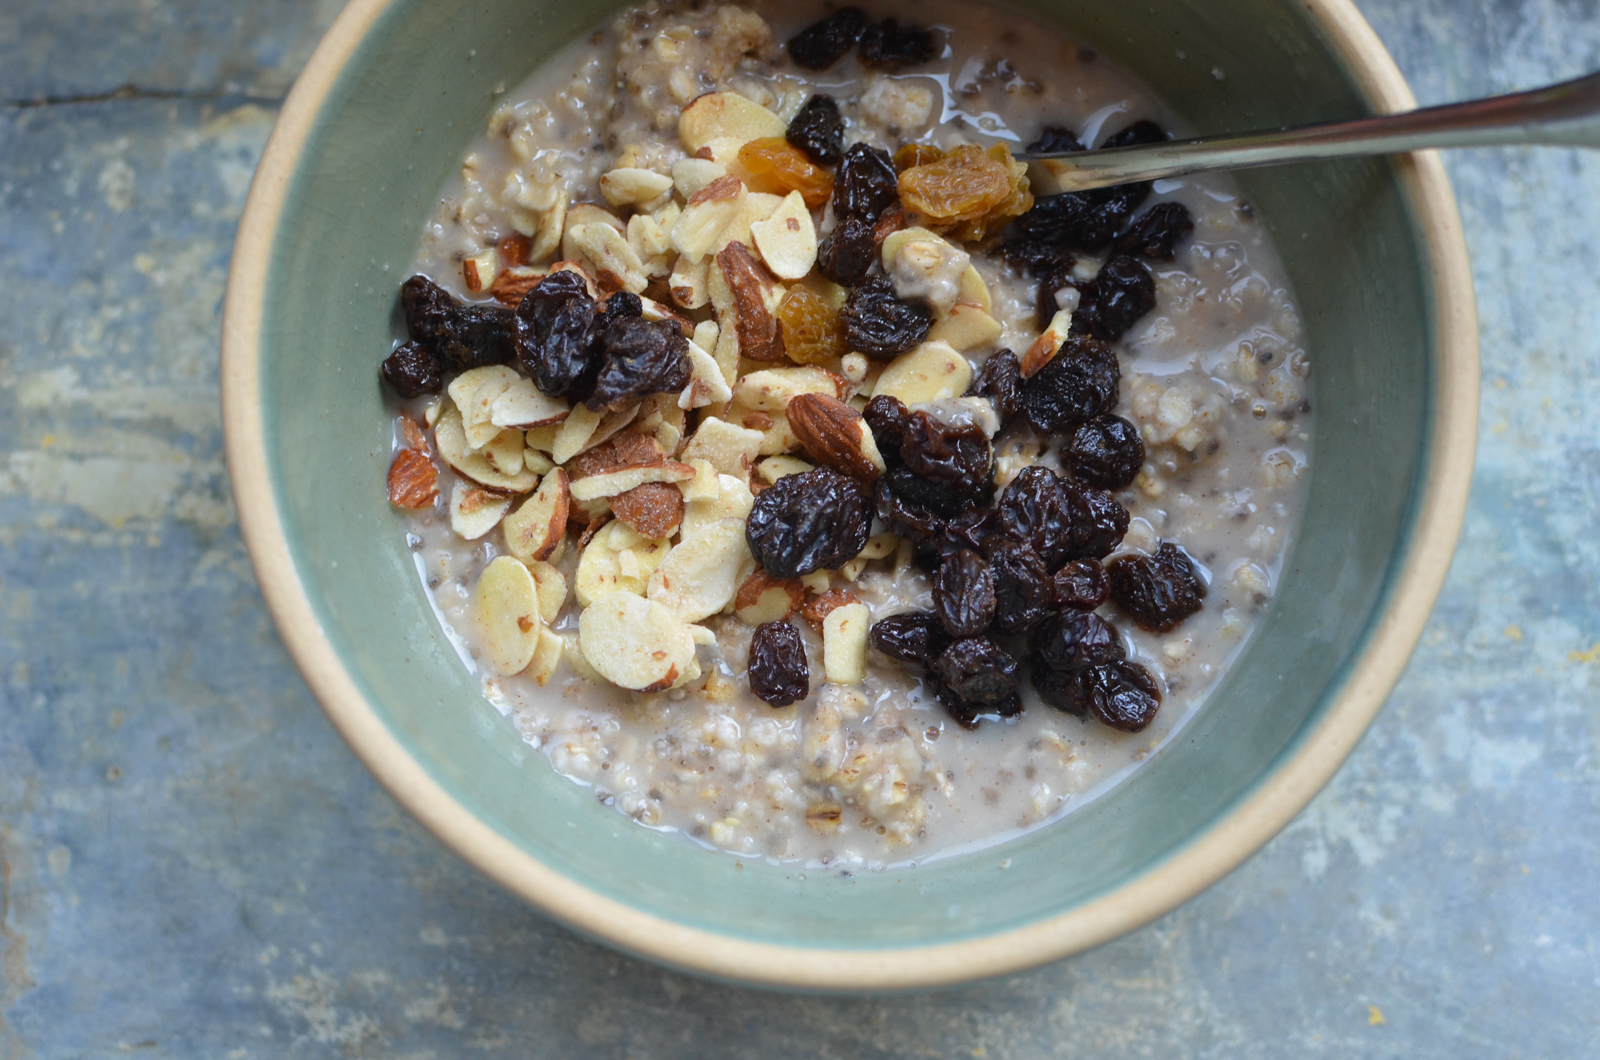 Prepared homemade instant oats in a pale green bowl, topped with raisins and sliced almonds.